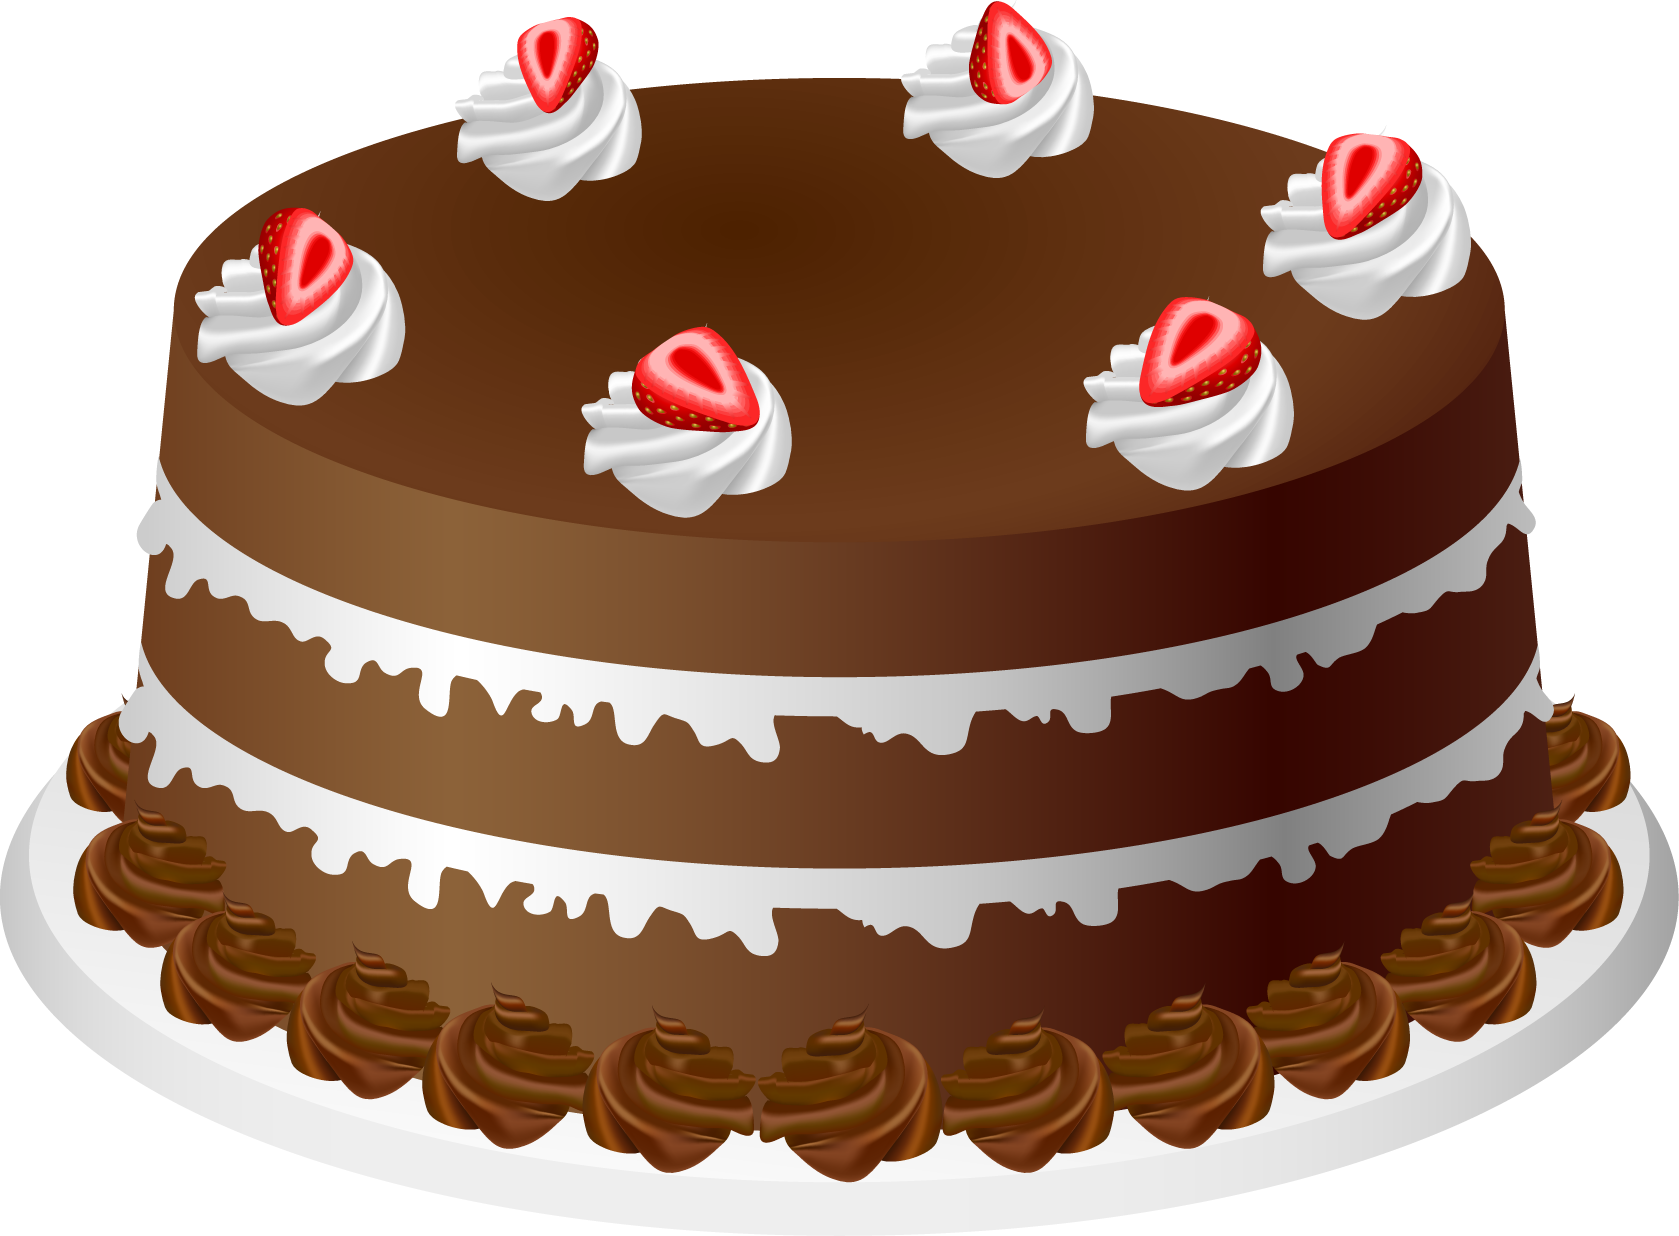 Sponge Cake clipart cartoon Are «Cake» there in Cake